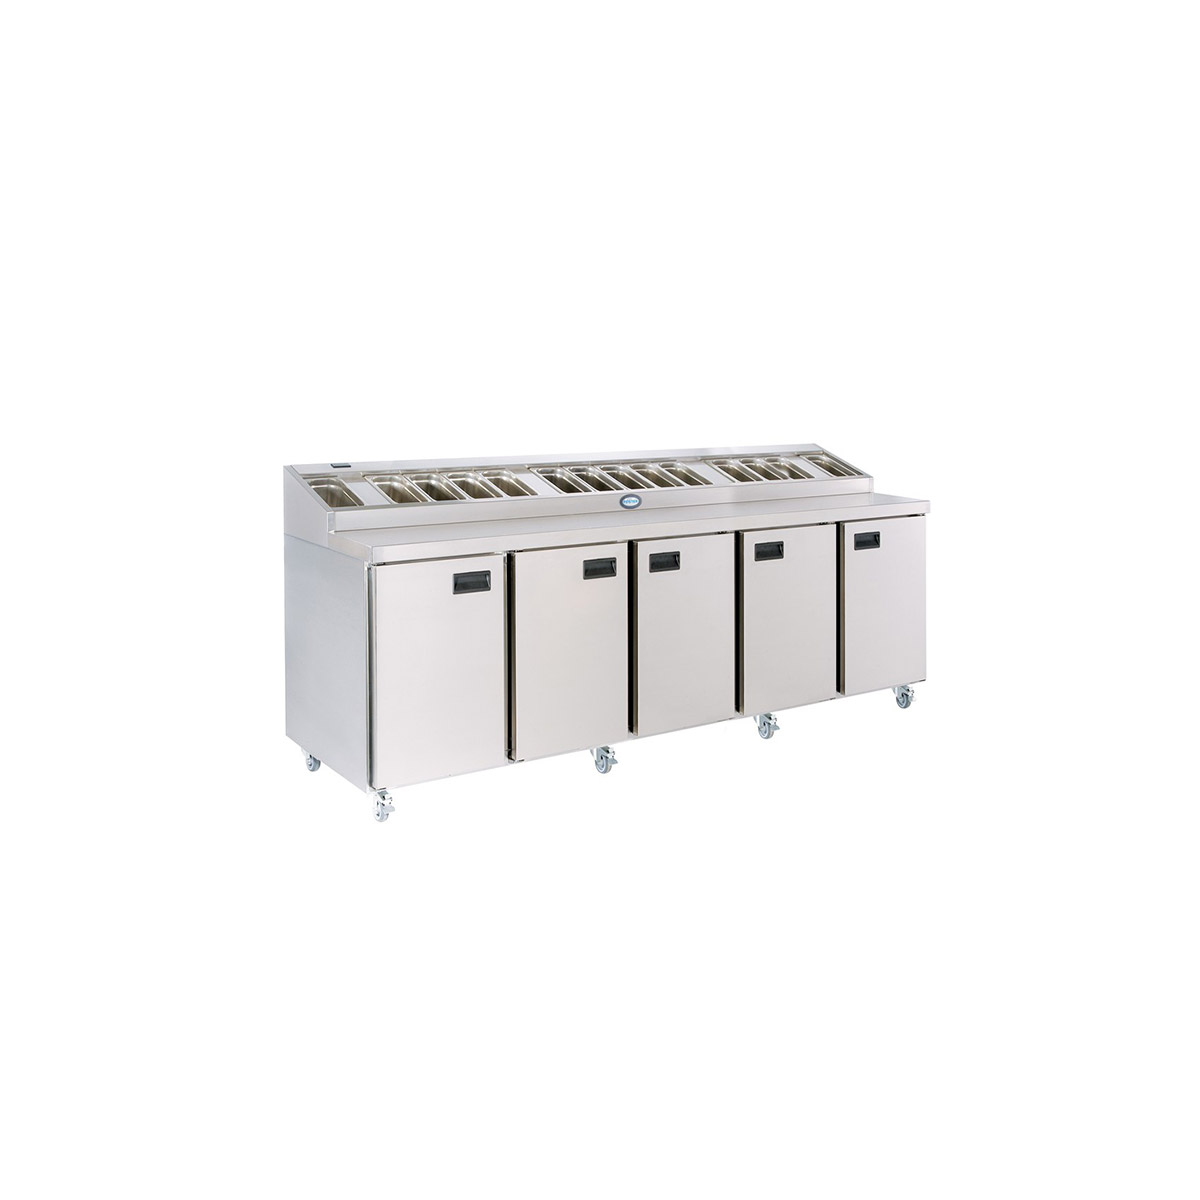 Foster FPS5HR 720 Ltr Stainless Steel Refrigerated Prep Counter